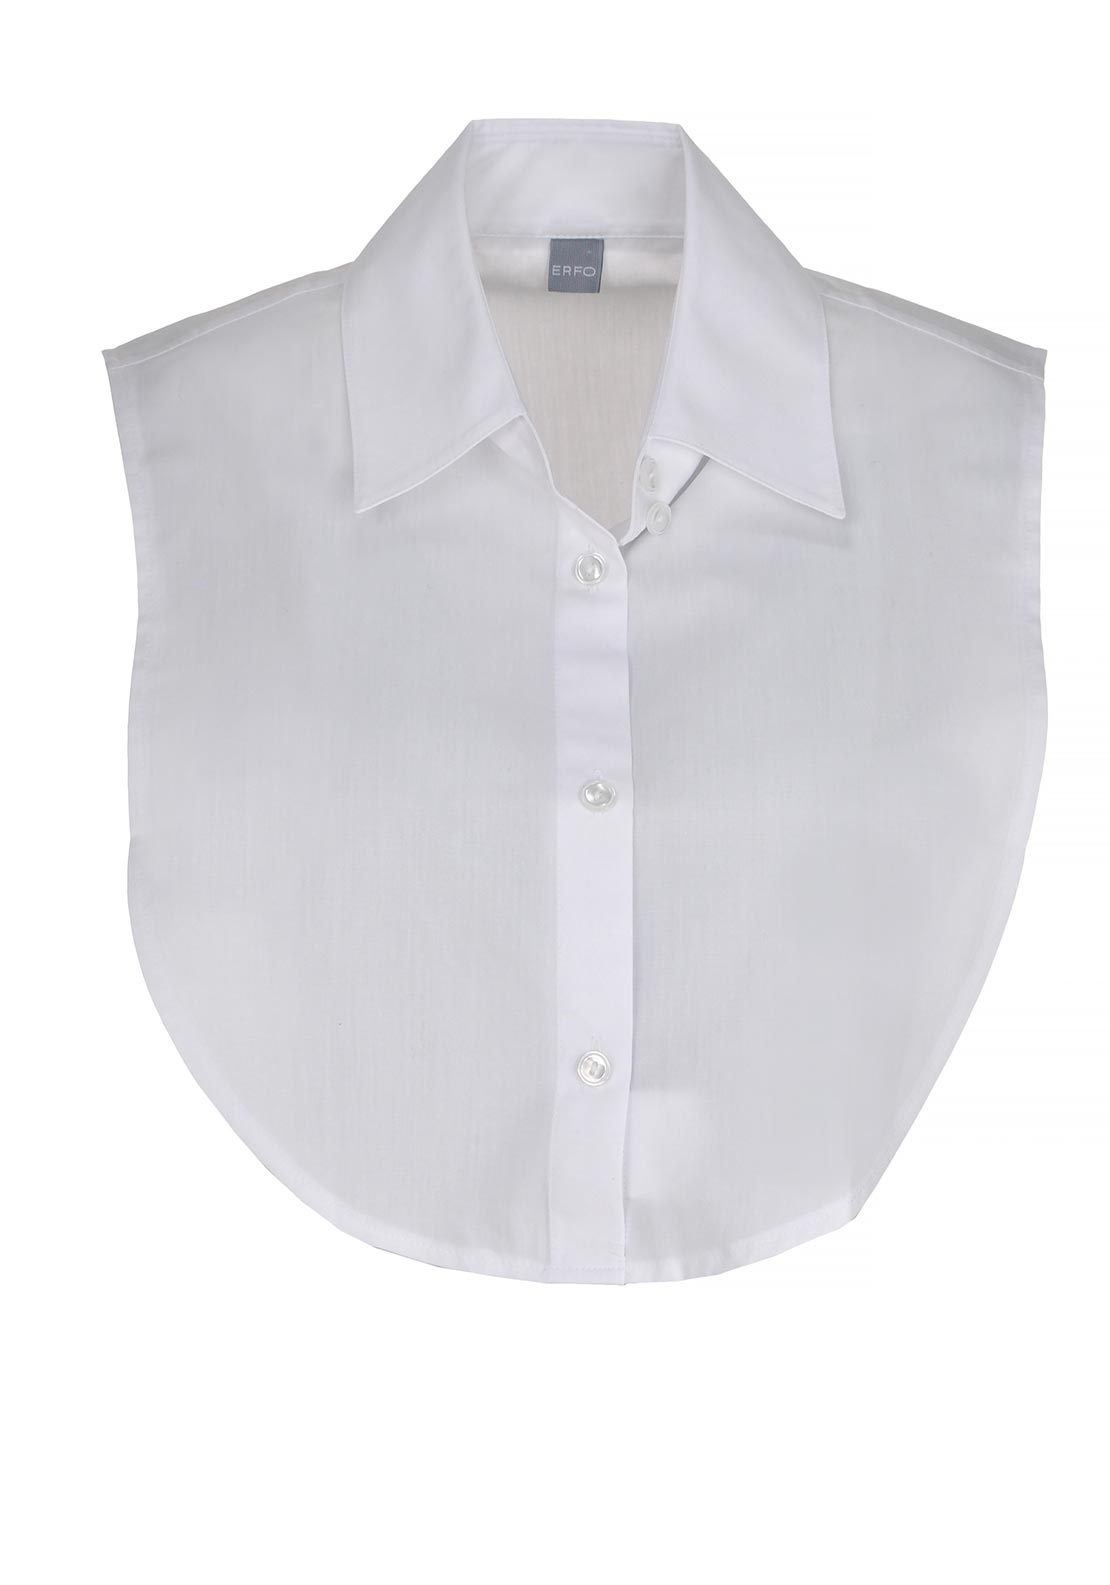 ERFO Shirt Collar, White